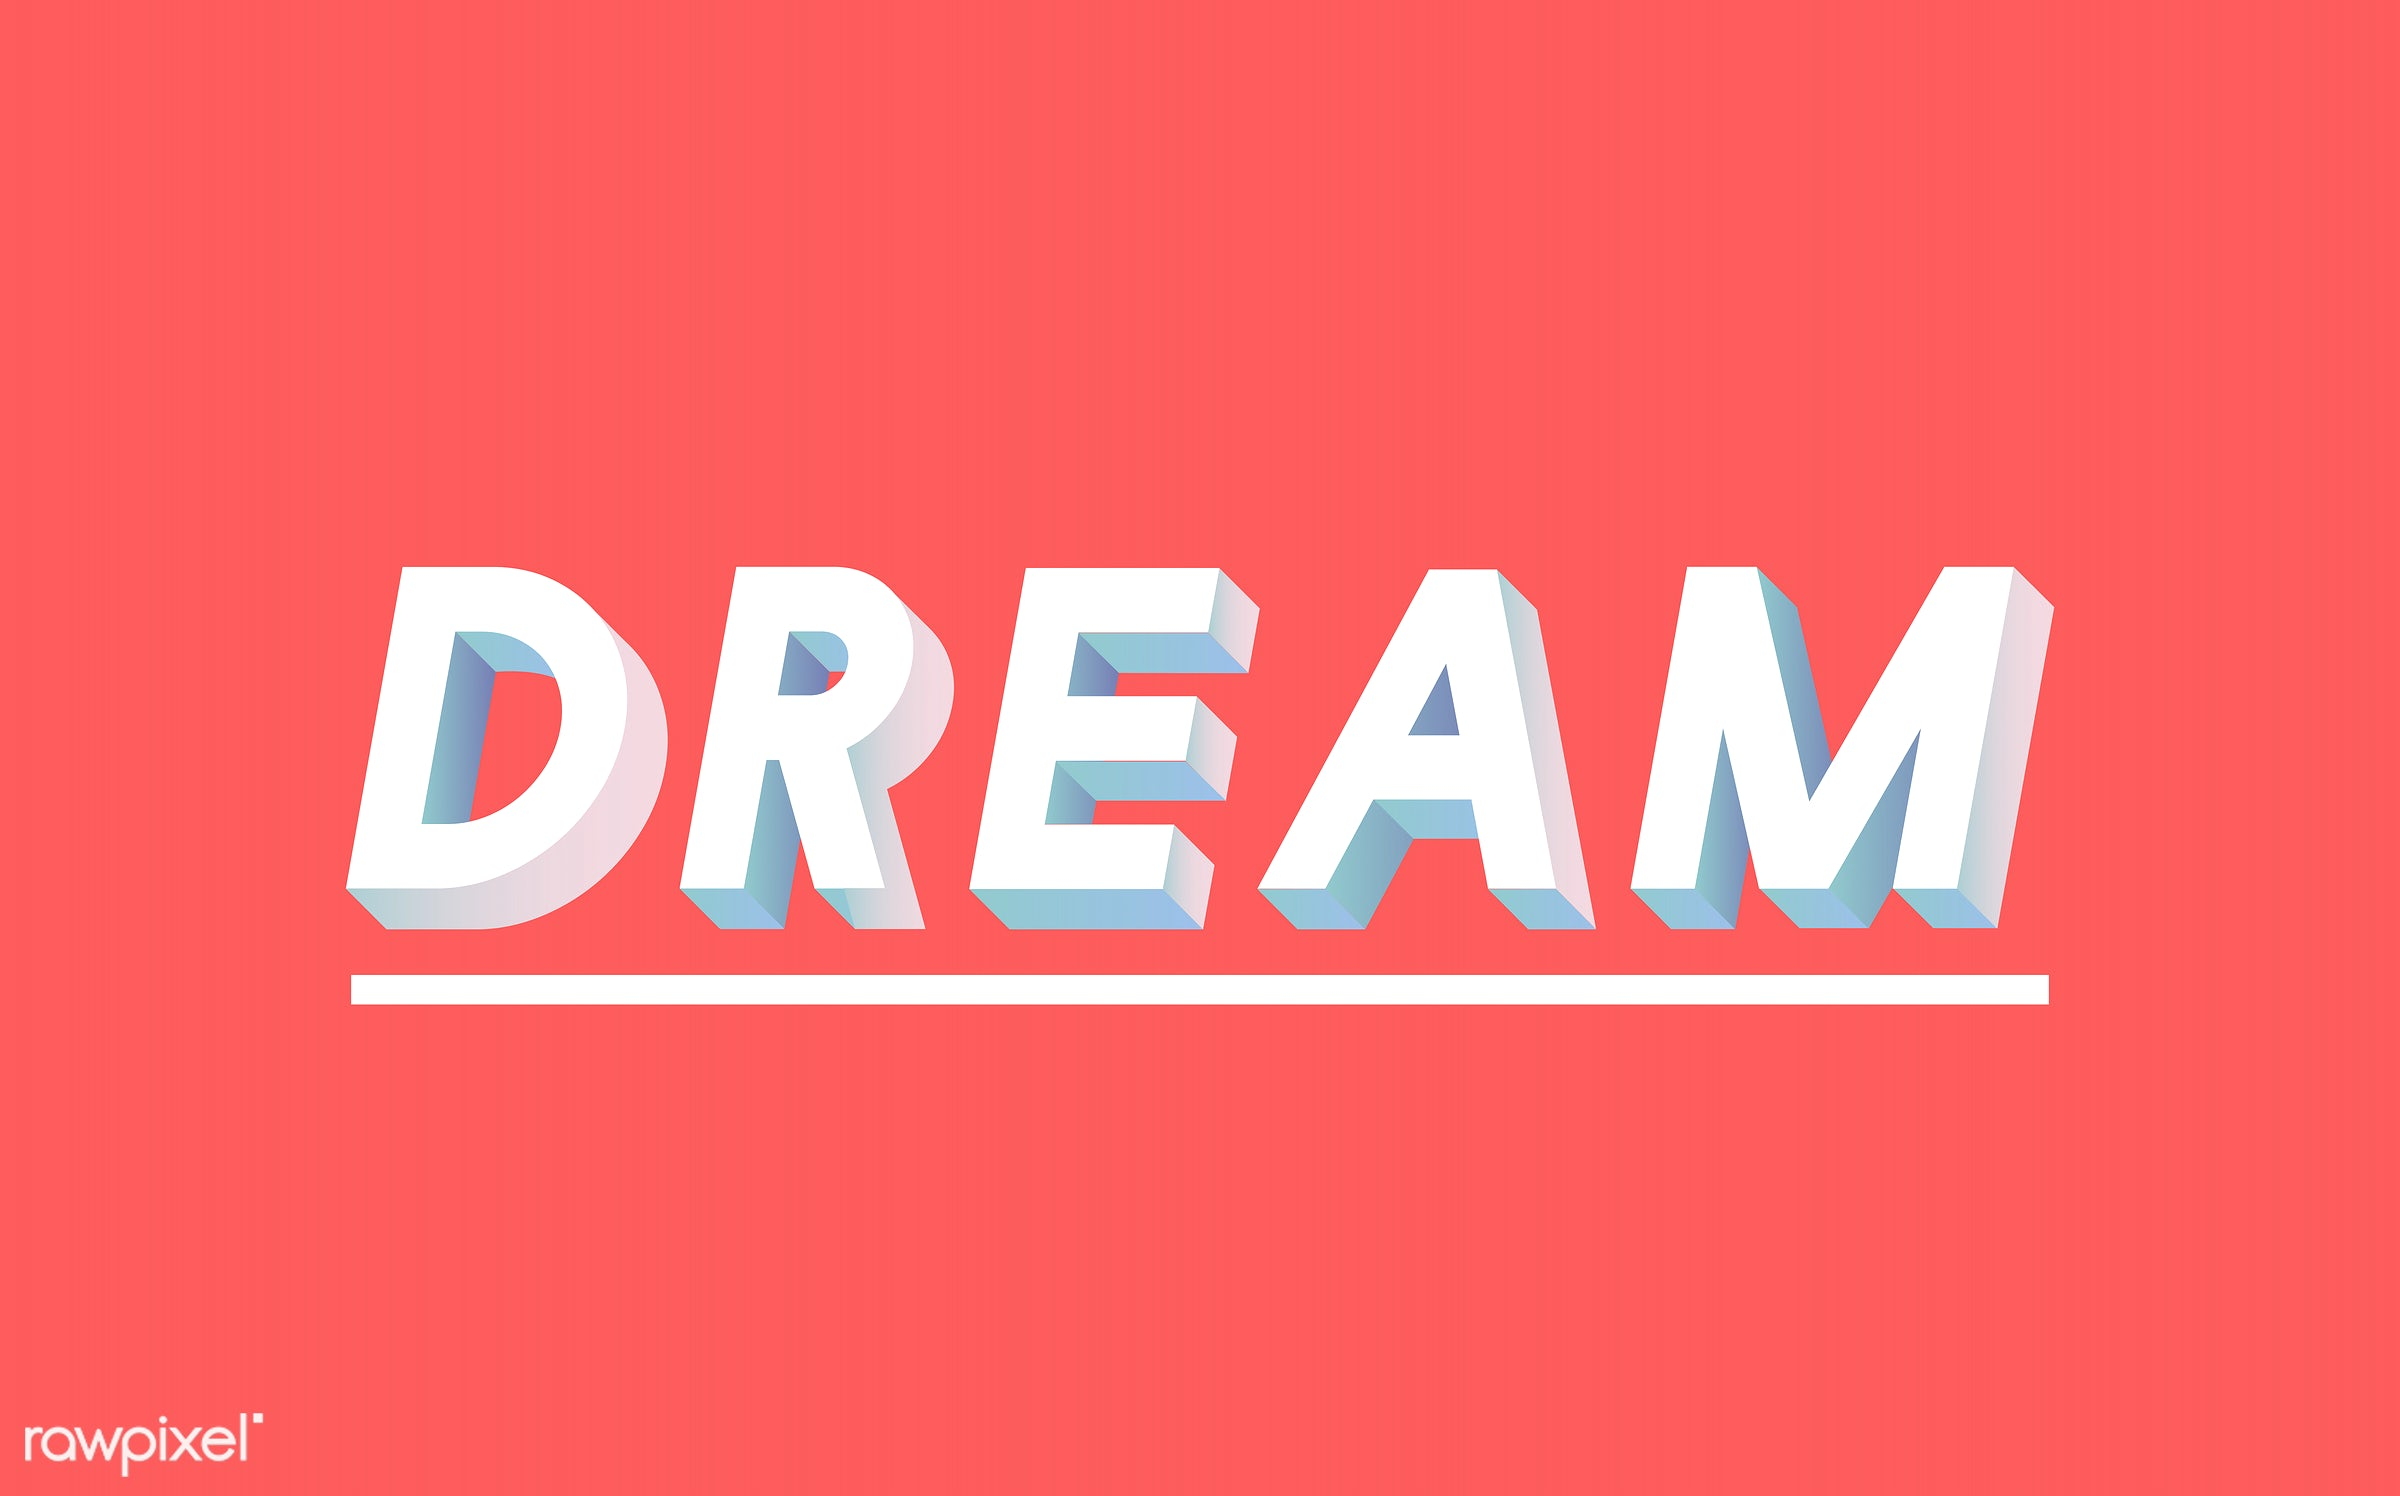 neon, colorful, 3d, three dimensional, vector, illustration, graphic, word, red, white, dream big, dream, dreamer